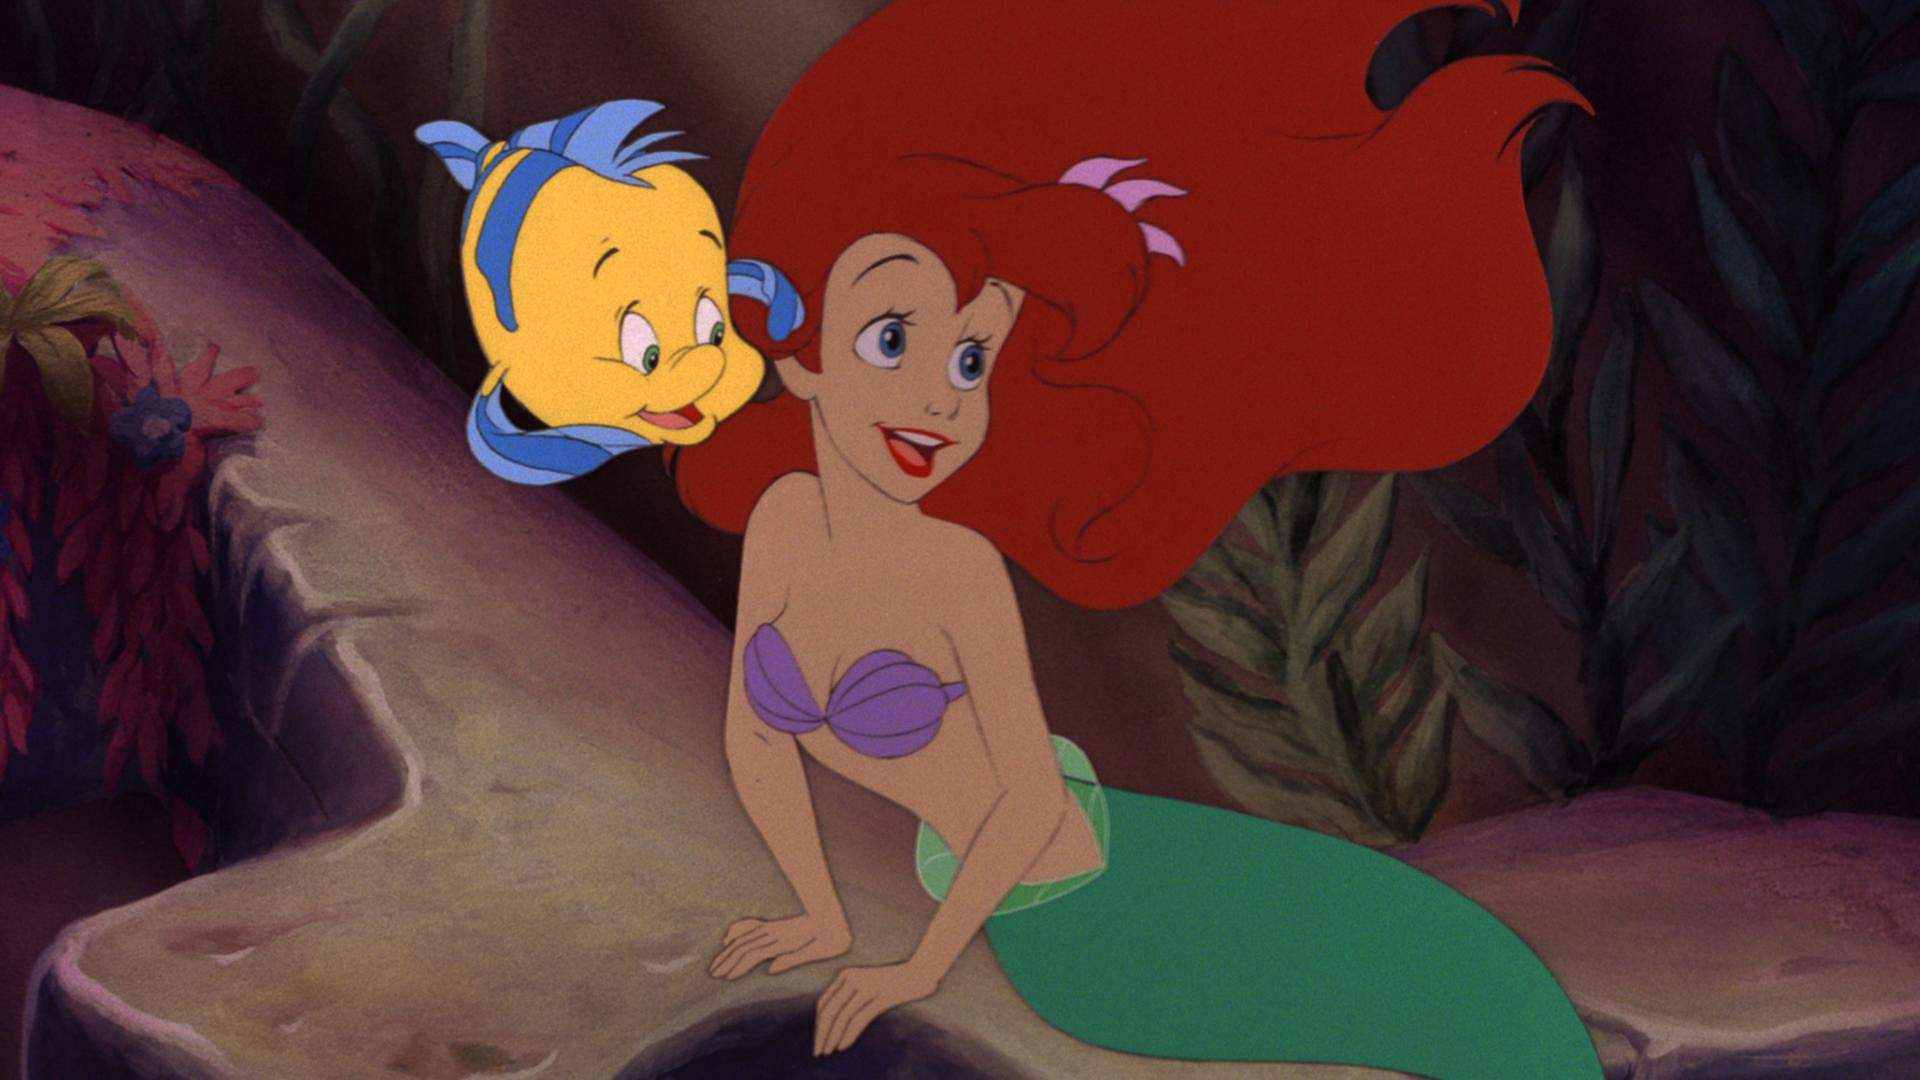 'The Little Mermaid' Live in Concert with the MSO